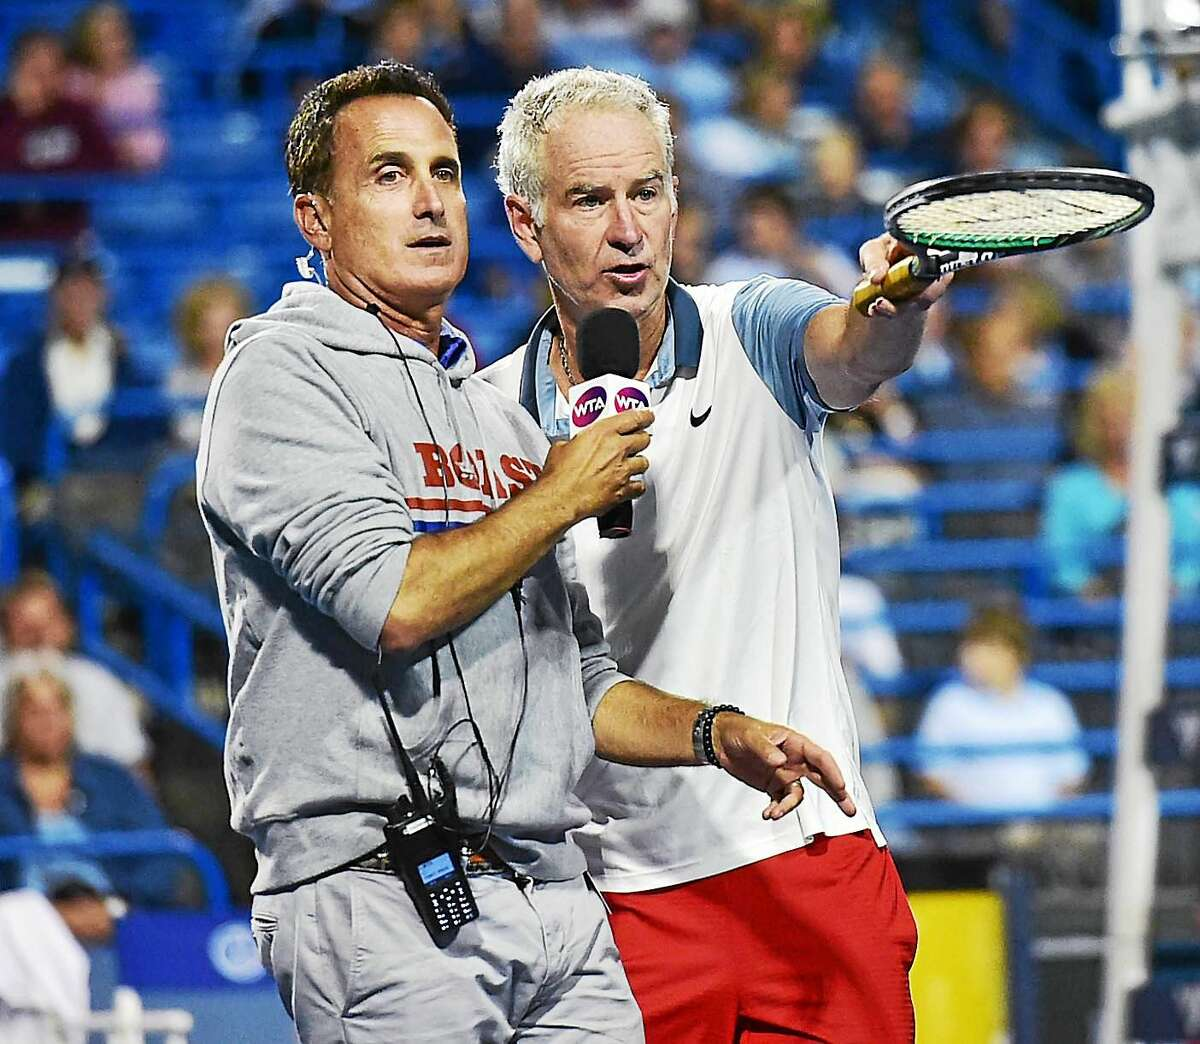 John McEnroe, with help from emcee and Tennis Channel host Andrew Krasny, raffles off two of his racquets, raising $7,000 for the Smilow Cancer Hospital at Yale-New Haven on Friday night during the men's legends match against Jim Courier at the Connecticut Tennis Center.